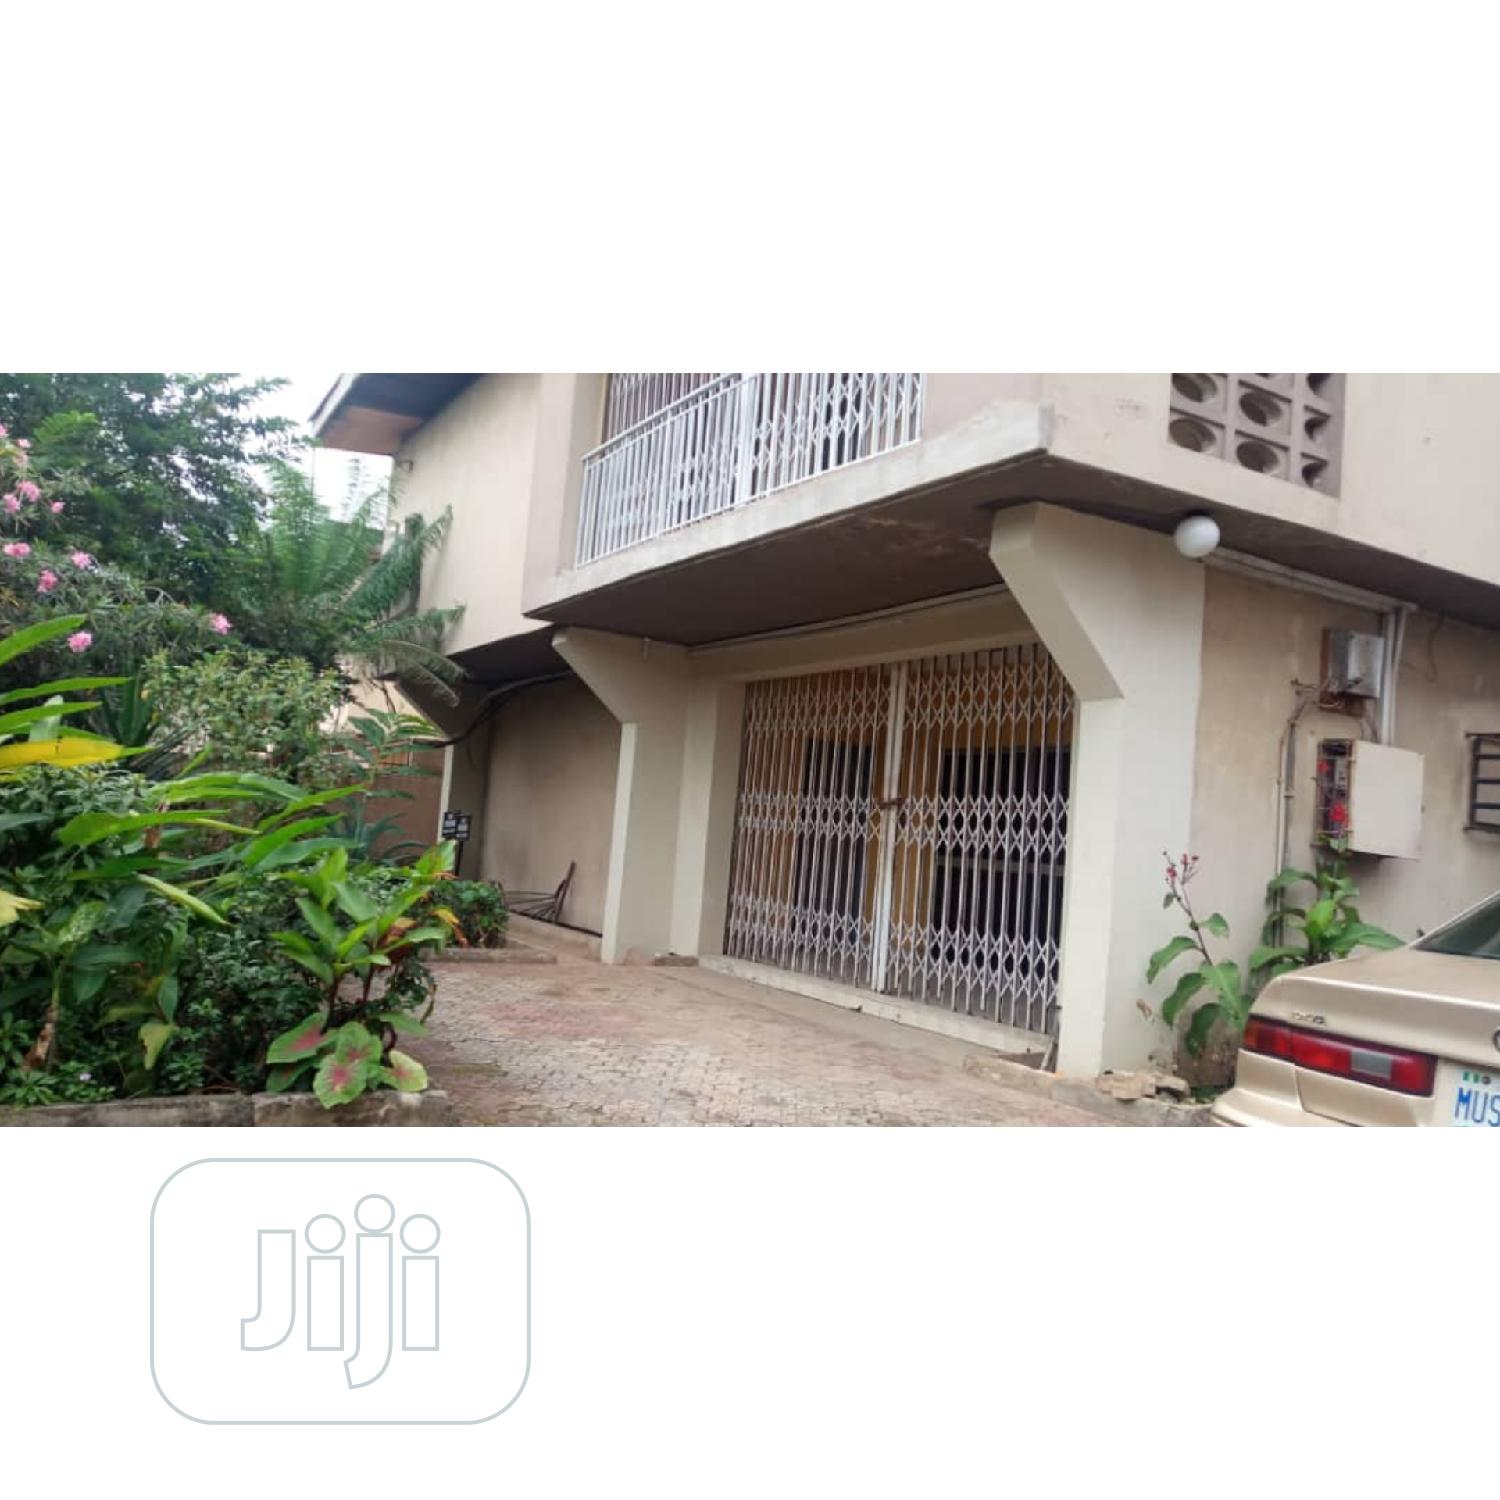 HOT Sale of 5bedroom Duplex   Houses & Apartments For Sale for sale in Ikeja, Lagos State, Nigeria